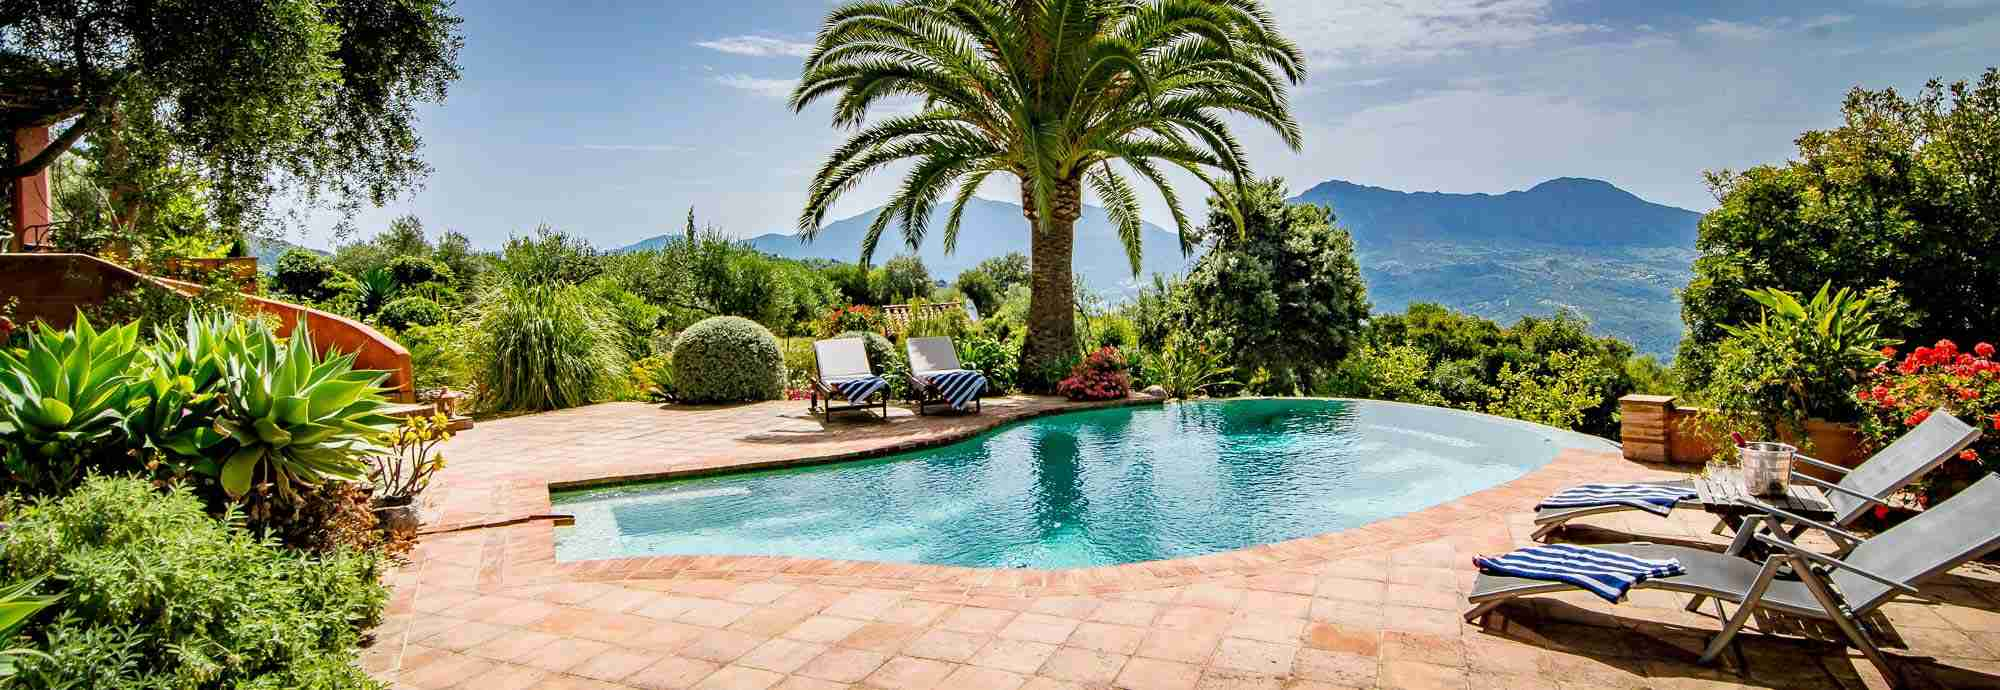 Deals for Holiday  Villas in Spain with Pools